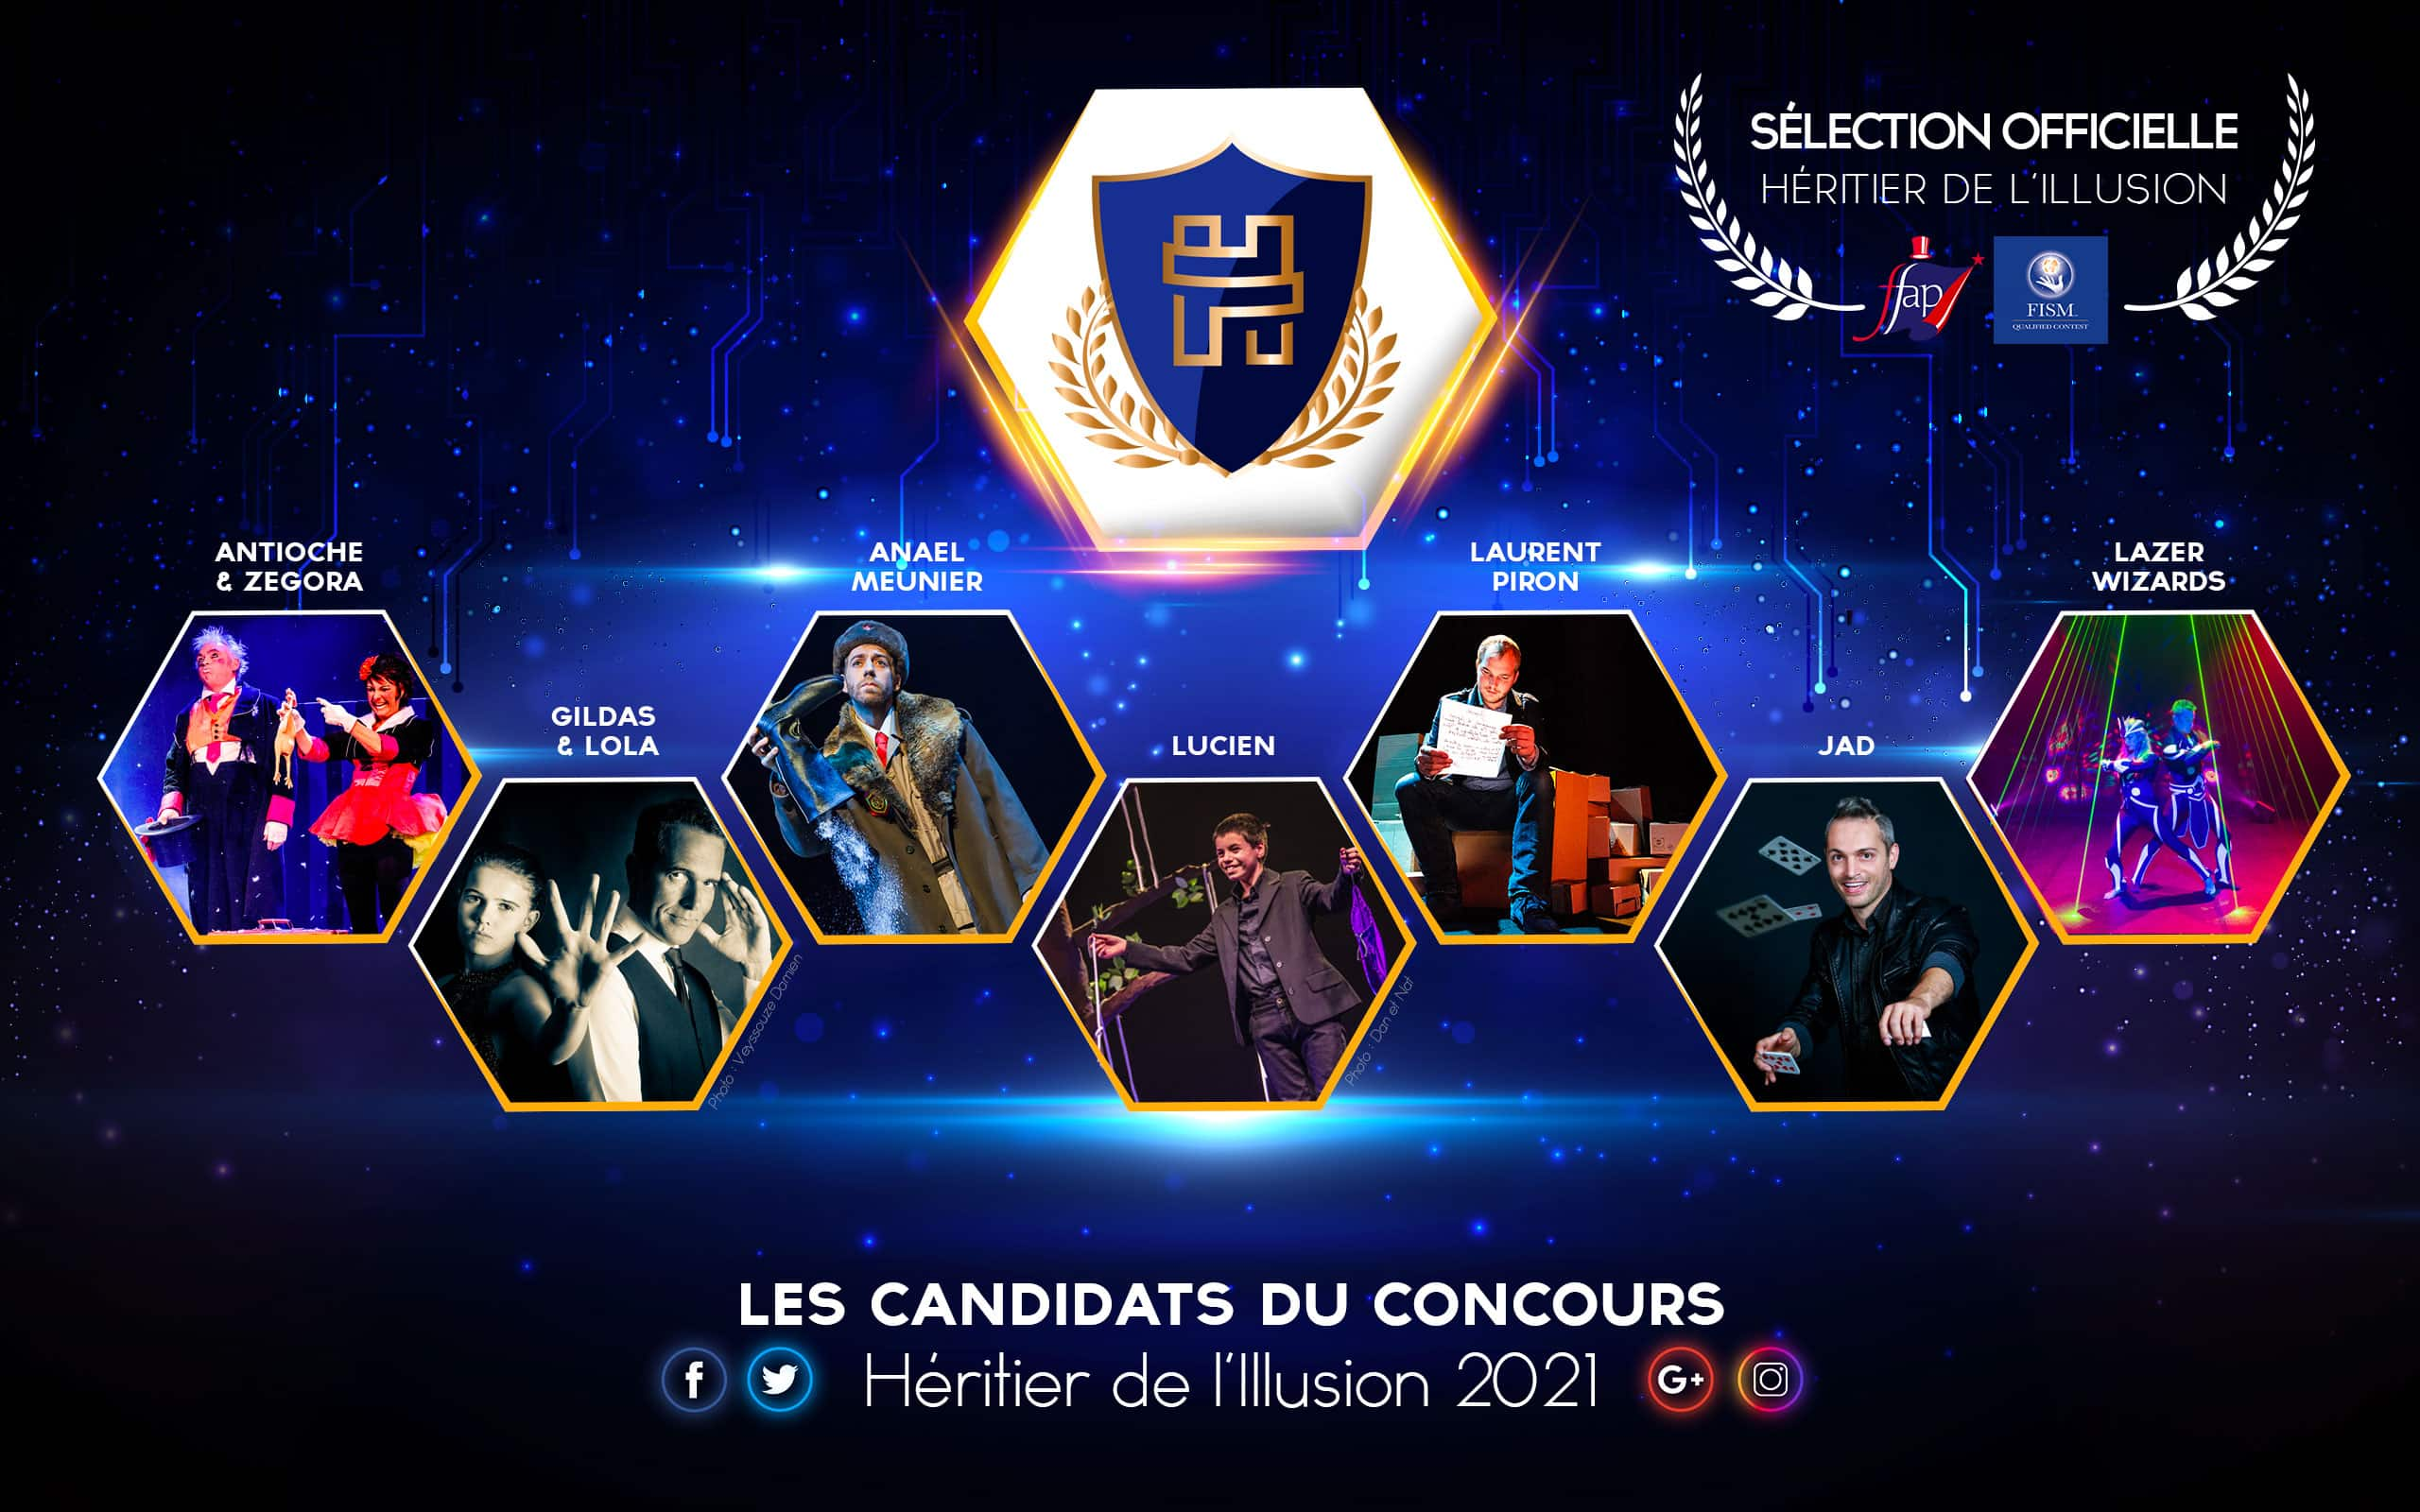 candidats selection officielle 2021 International contest